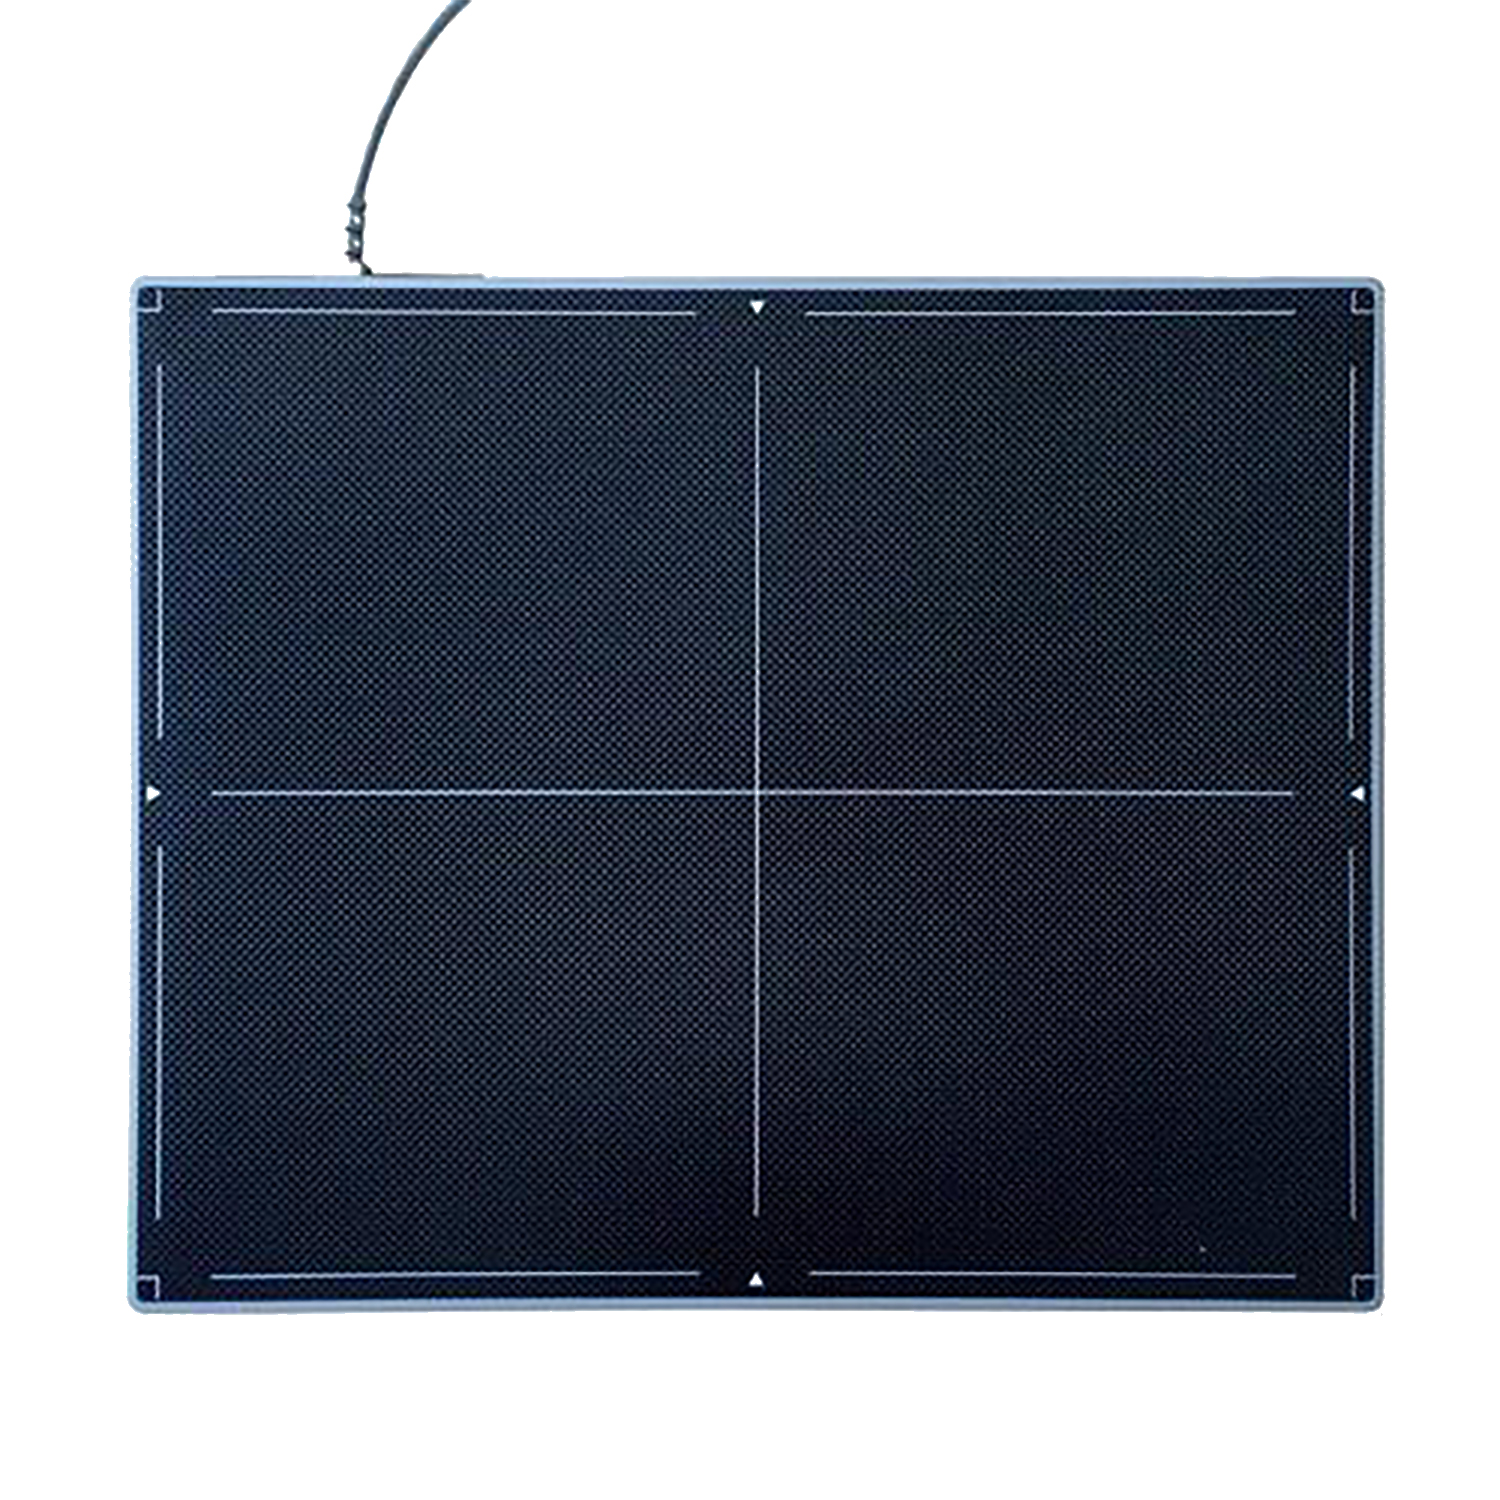 Stationary X-Ray Plate